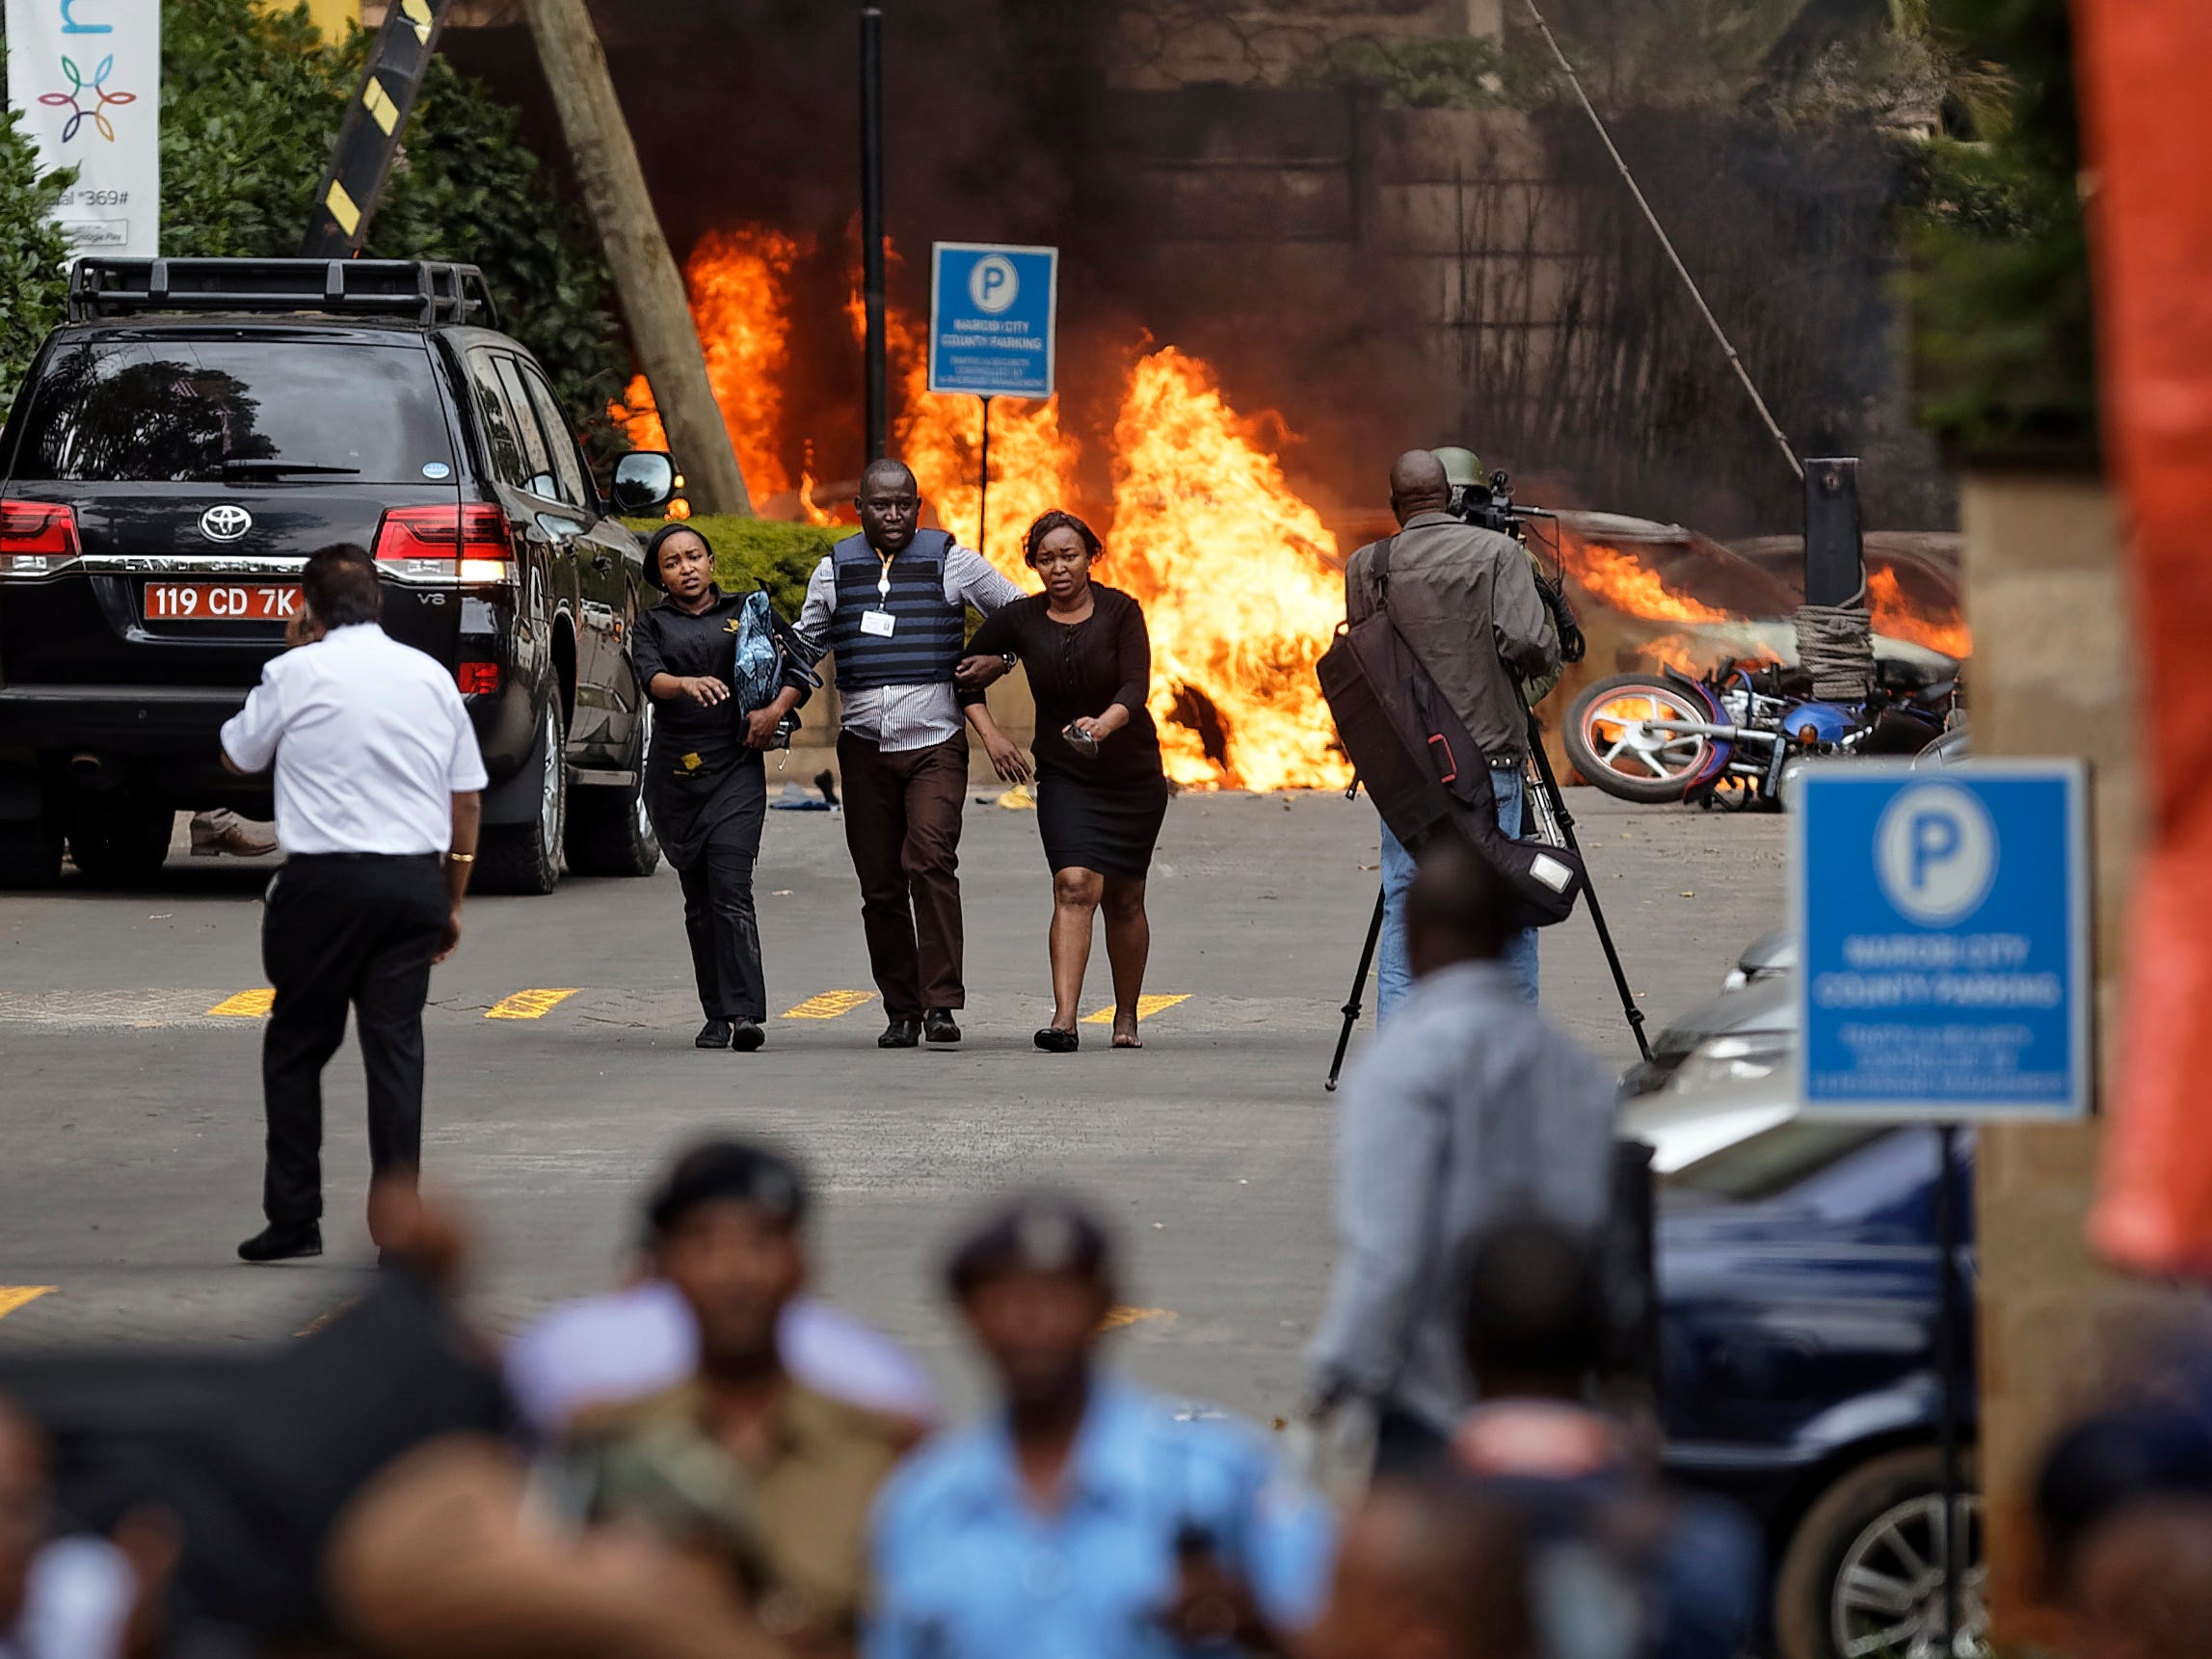 Security forces help civilians flee as cars burn behind at a hotel complex in Nairobi, Kenya Tuesday, January 15, 2019.